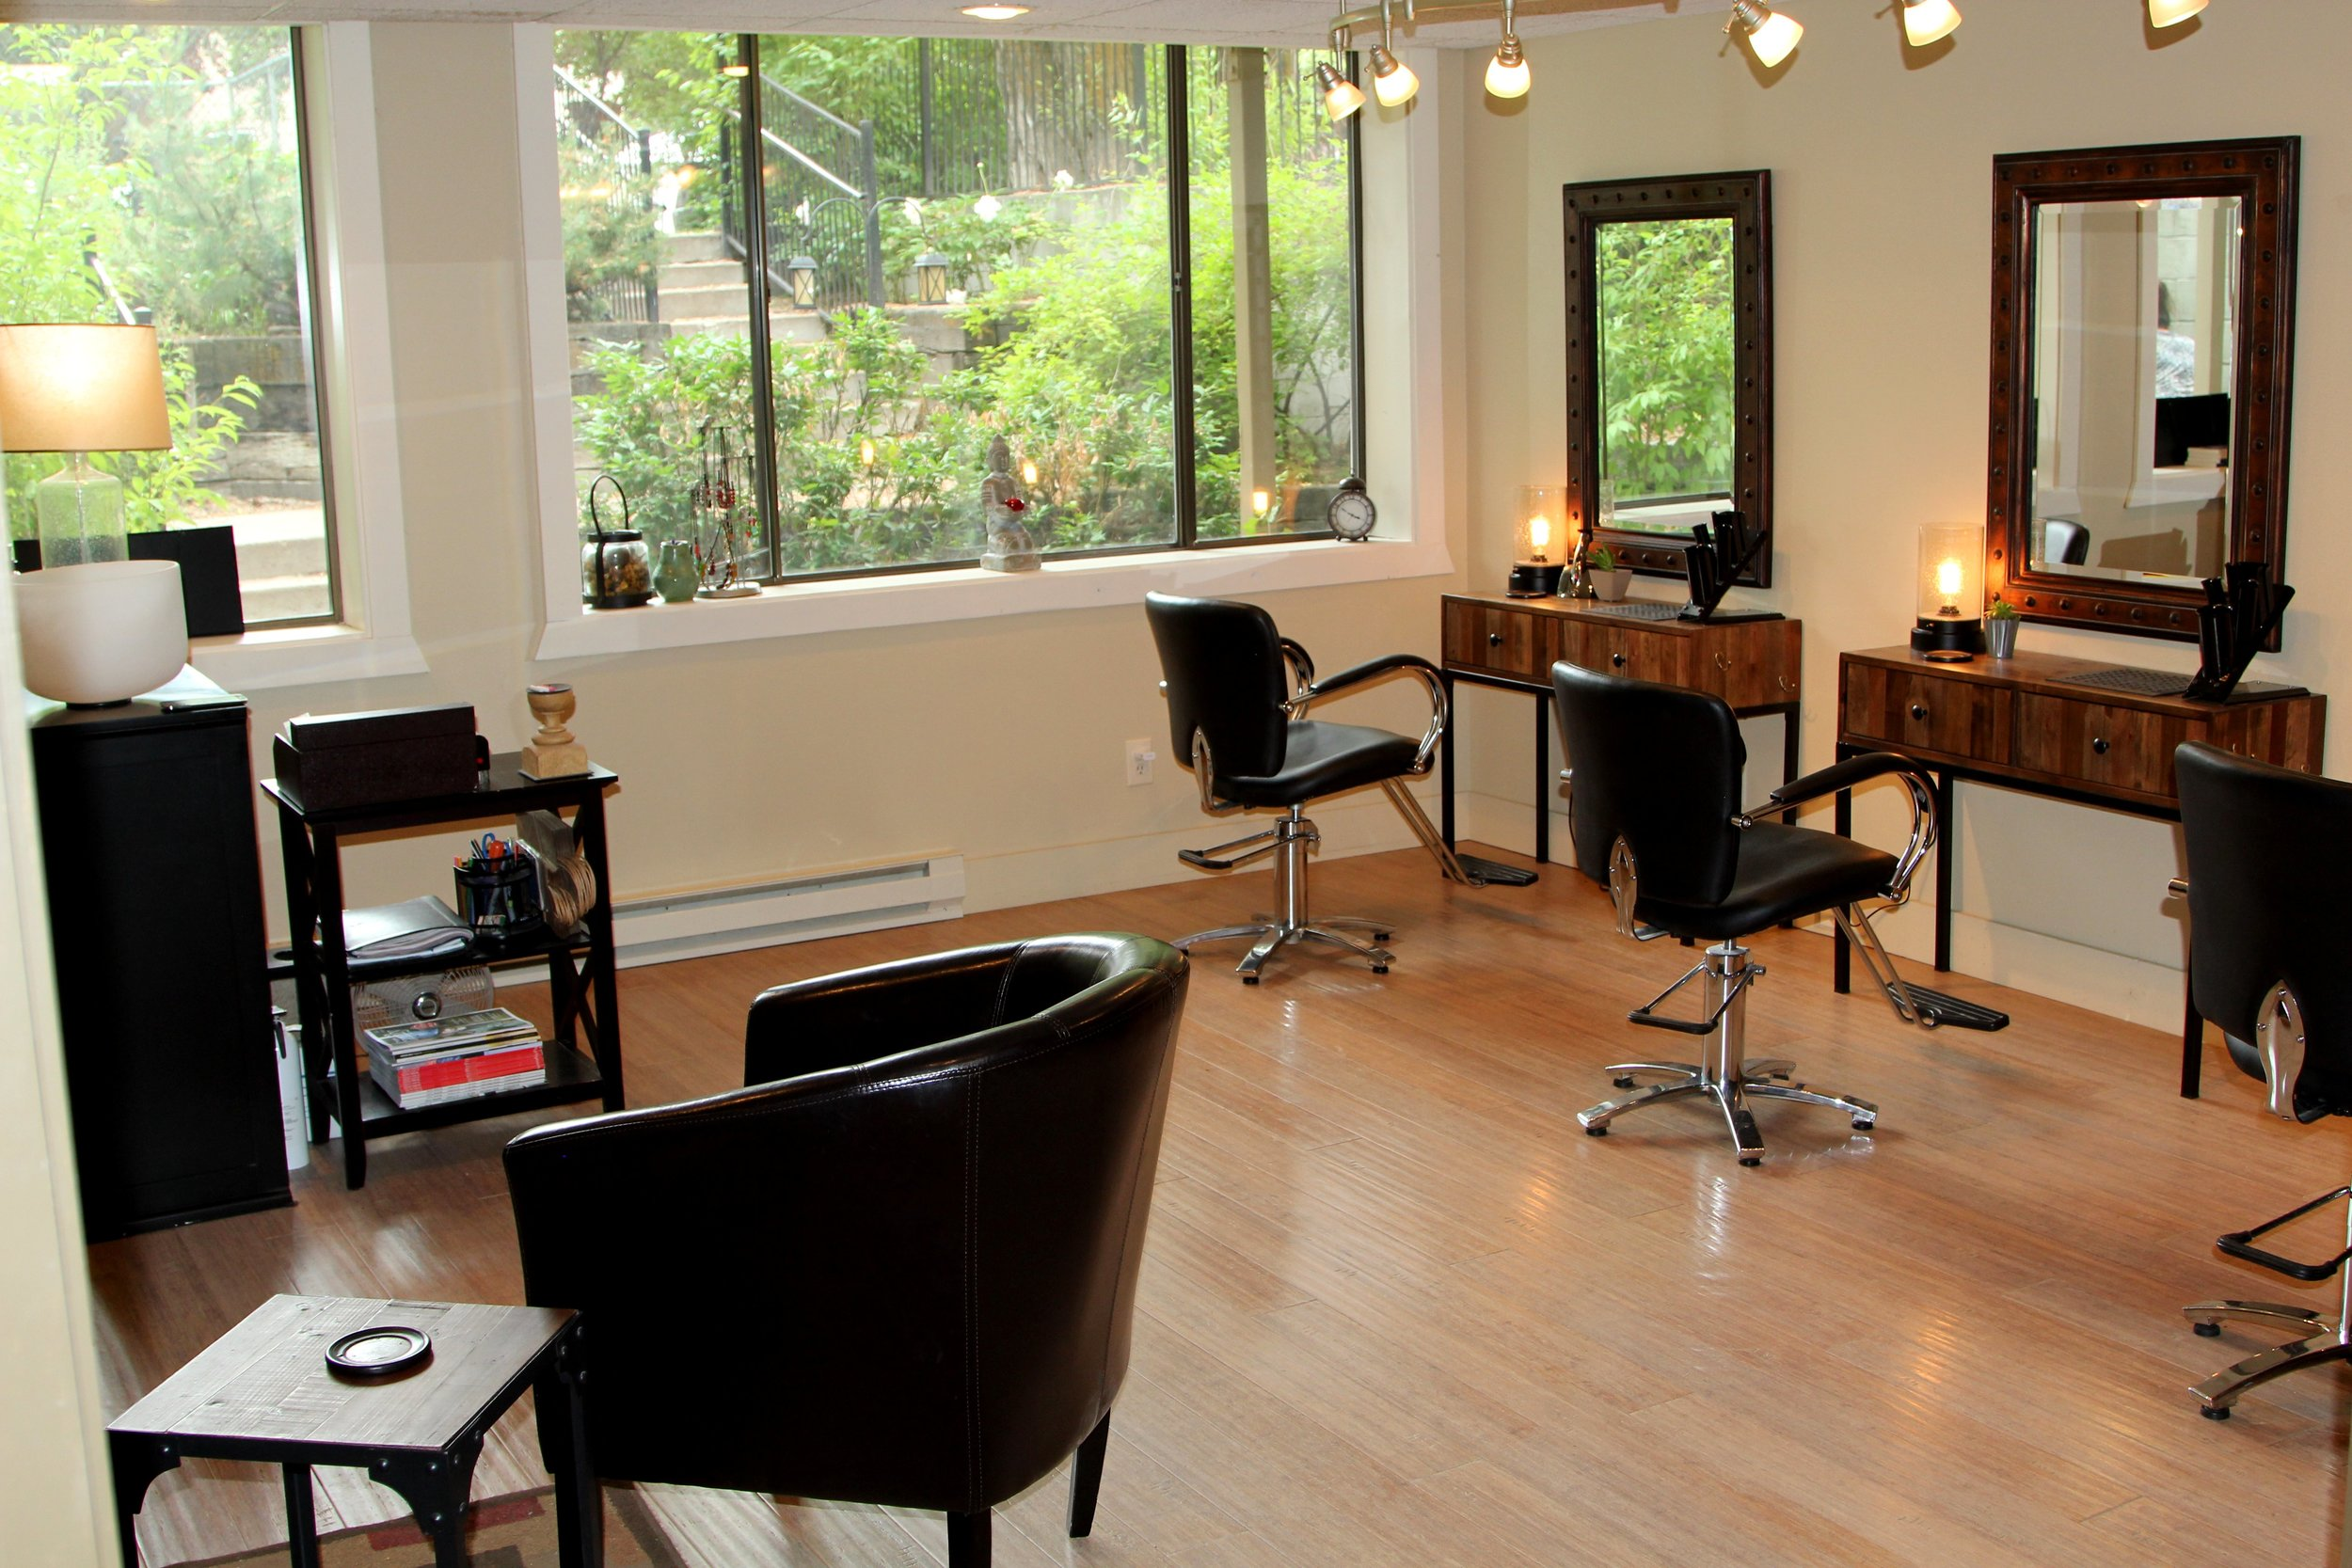 an ECO Friendly Salon & Spa nestled in the heart of downtown Jackson Hole, Wyoming where the health of you and the earth take priority in an intimate &rejuvenatingatmosphere. Online Booking available!! Find Book Now tab above, Mobile users download our app for super easy booking at  VAGARO.com  remember to bookmark Balance Salon & Spa page!!